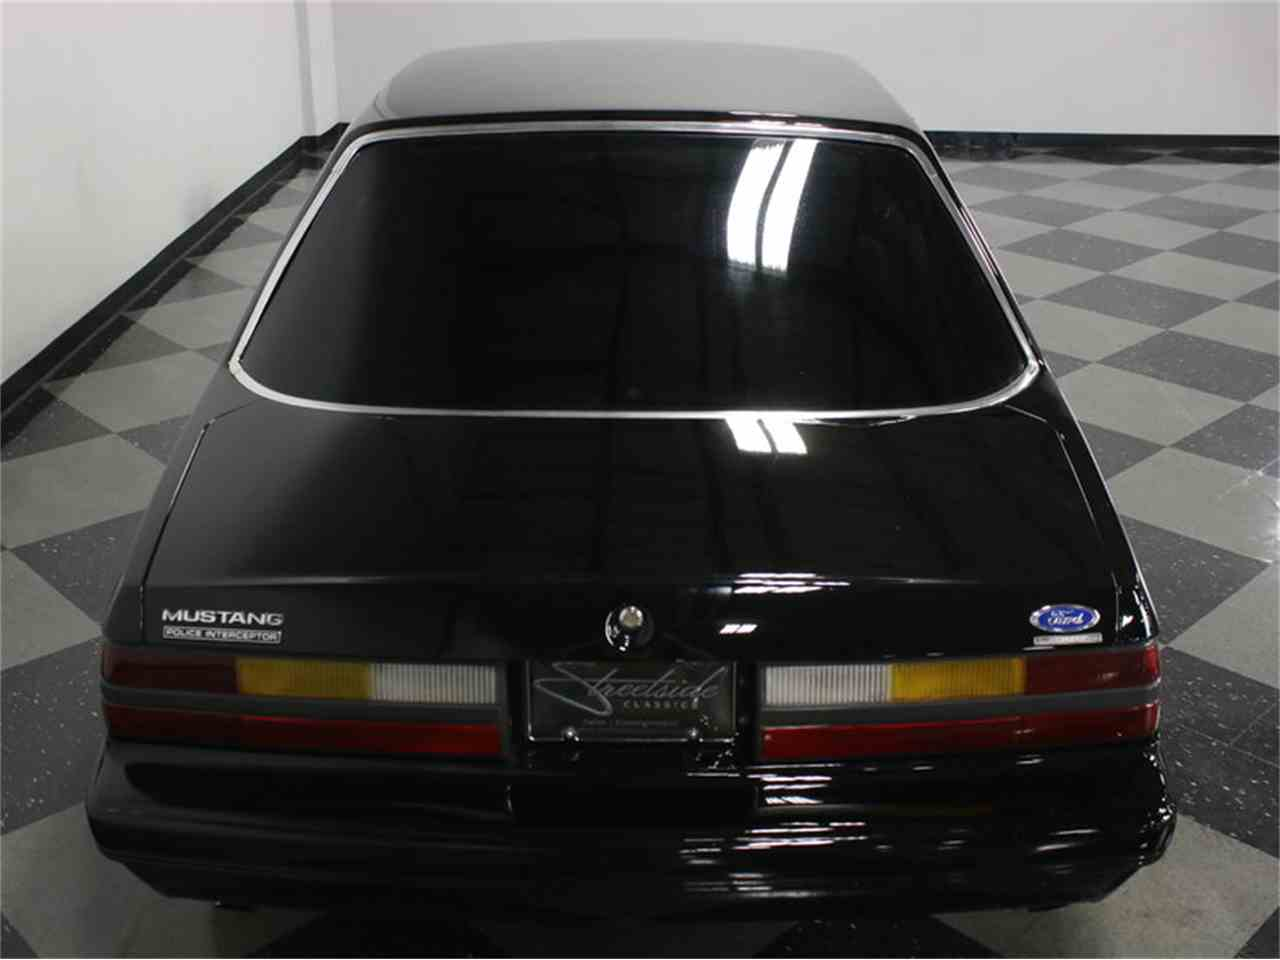 Large Picture of '86 Mustang SSP Interceptor - $24,995.00 Offered by Streetside Classics - Dallas / Fort Worth - JZNT